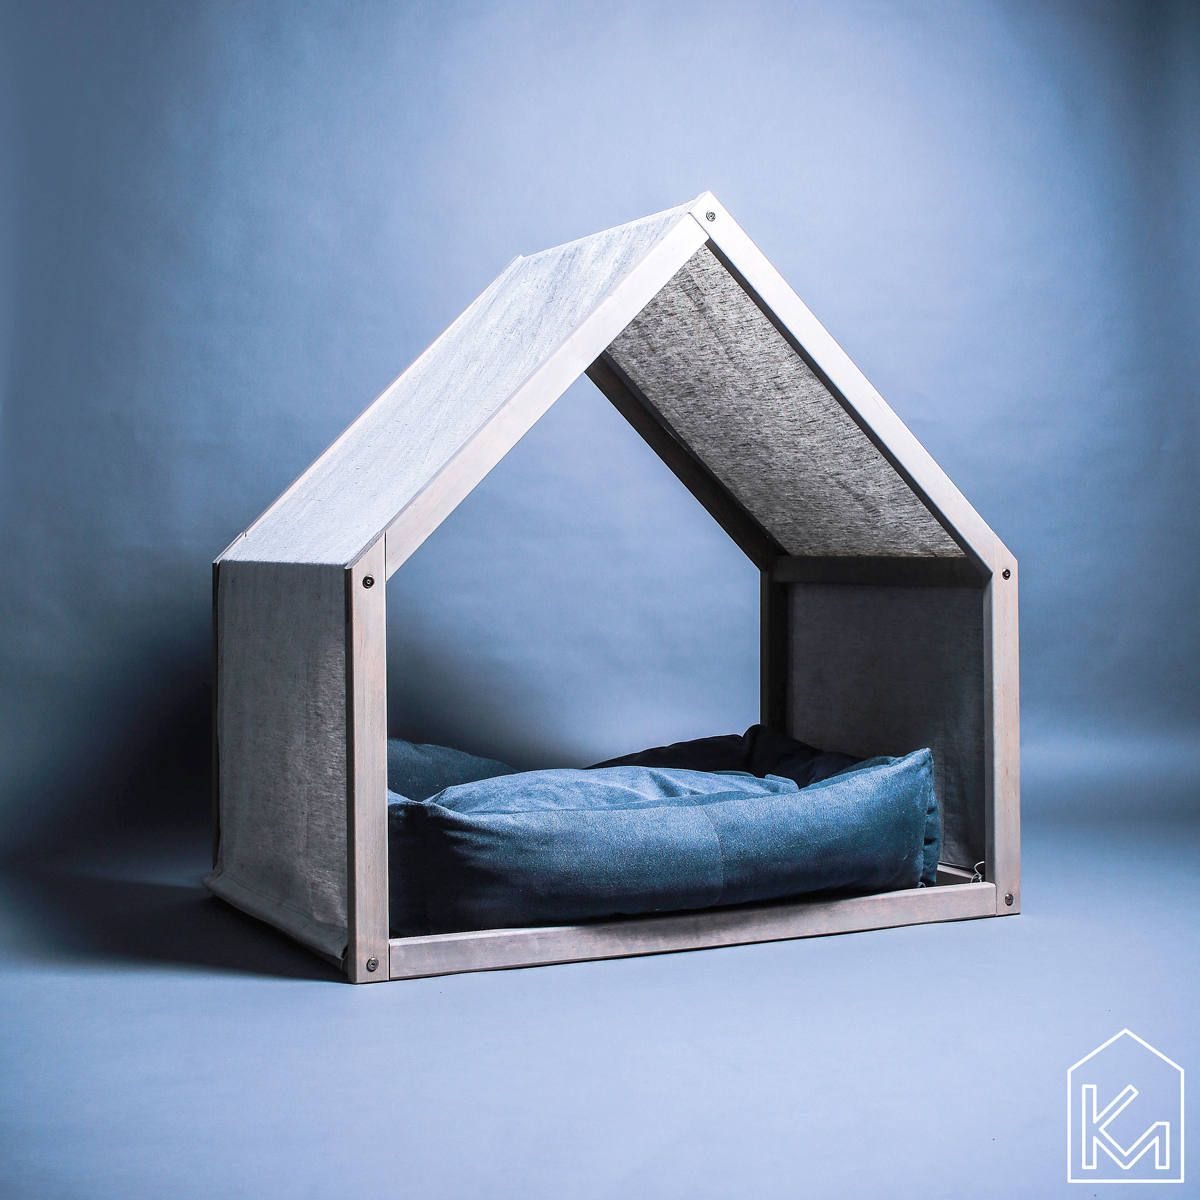 1559810074 547 cool dog houses with modern designs and fancy features - Cool Dog Houses With Modern Designs And Fancy Features